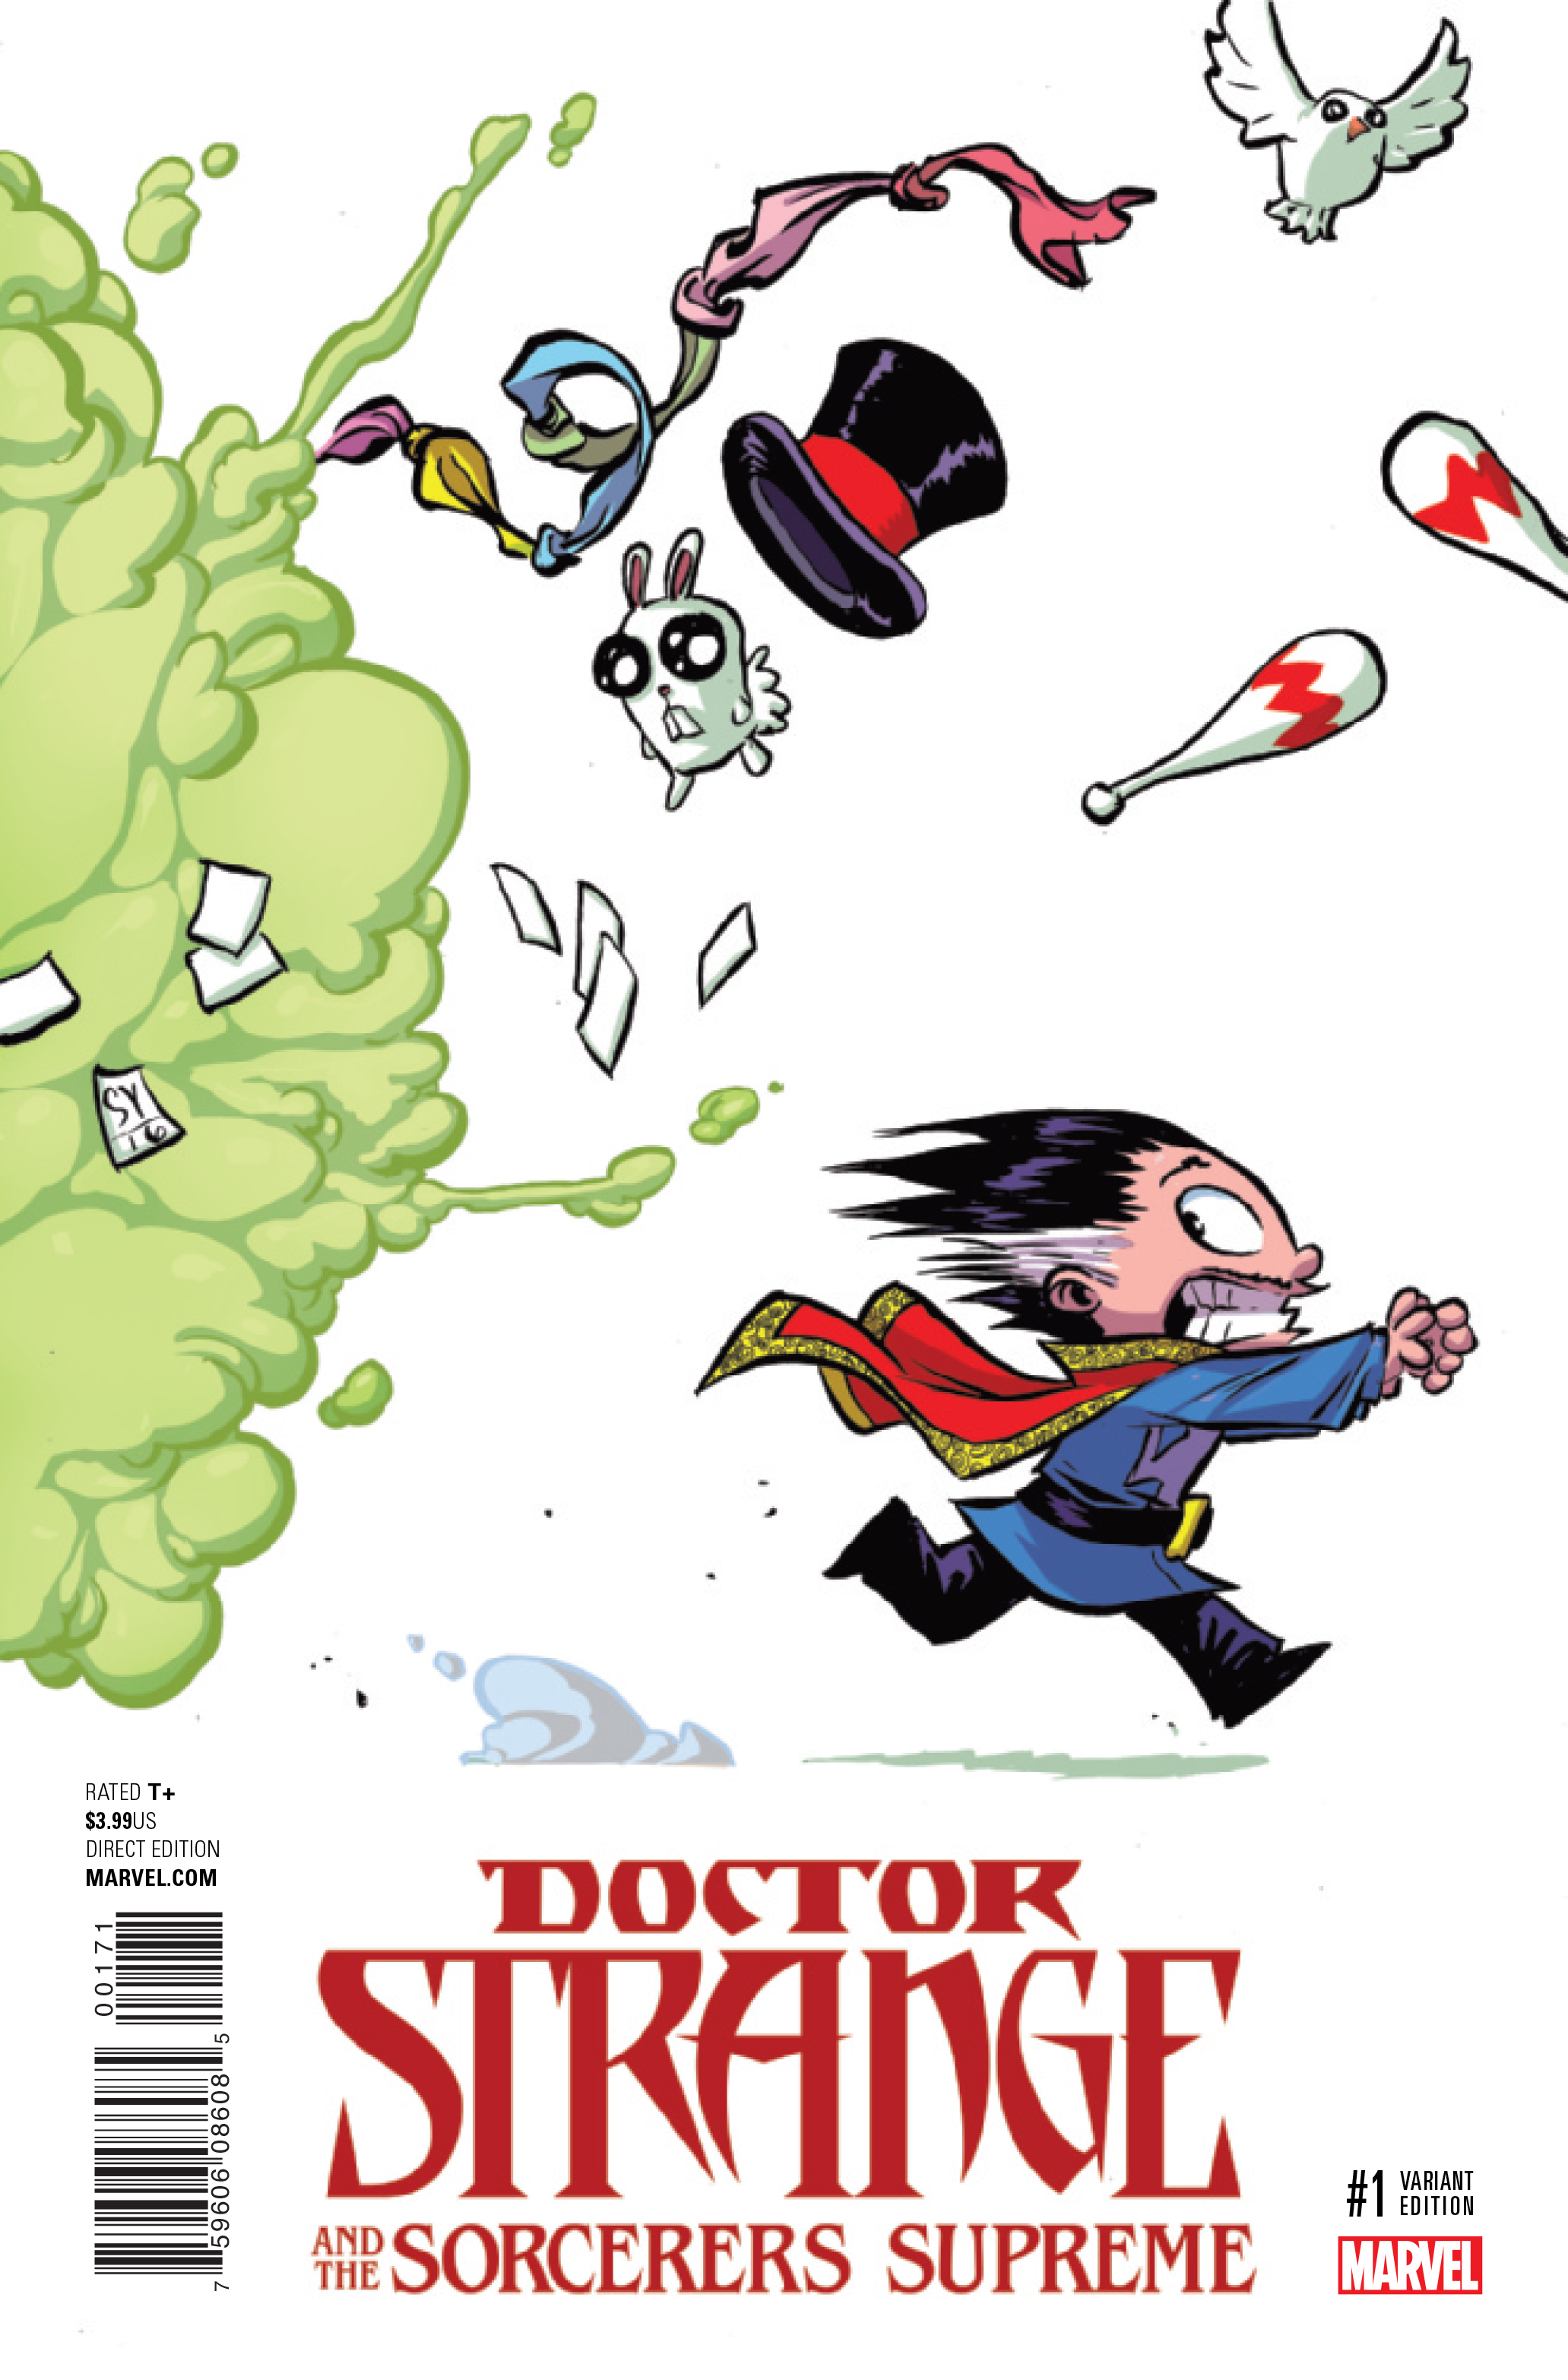 DOCTOR STRANGE SORCERERS SUPREME #1 YOUNG VAR NOW